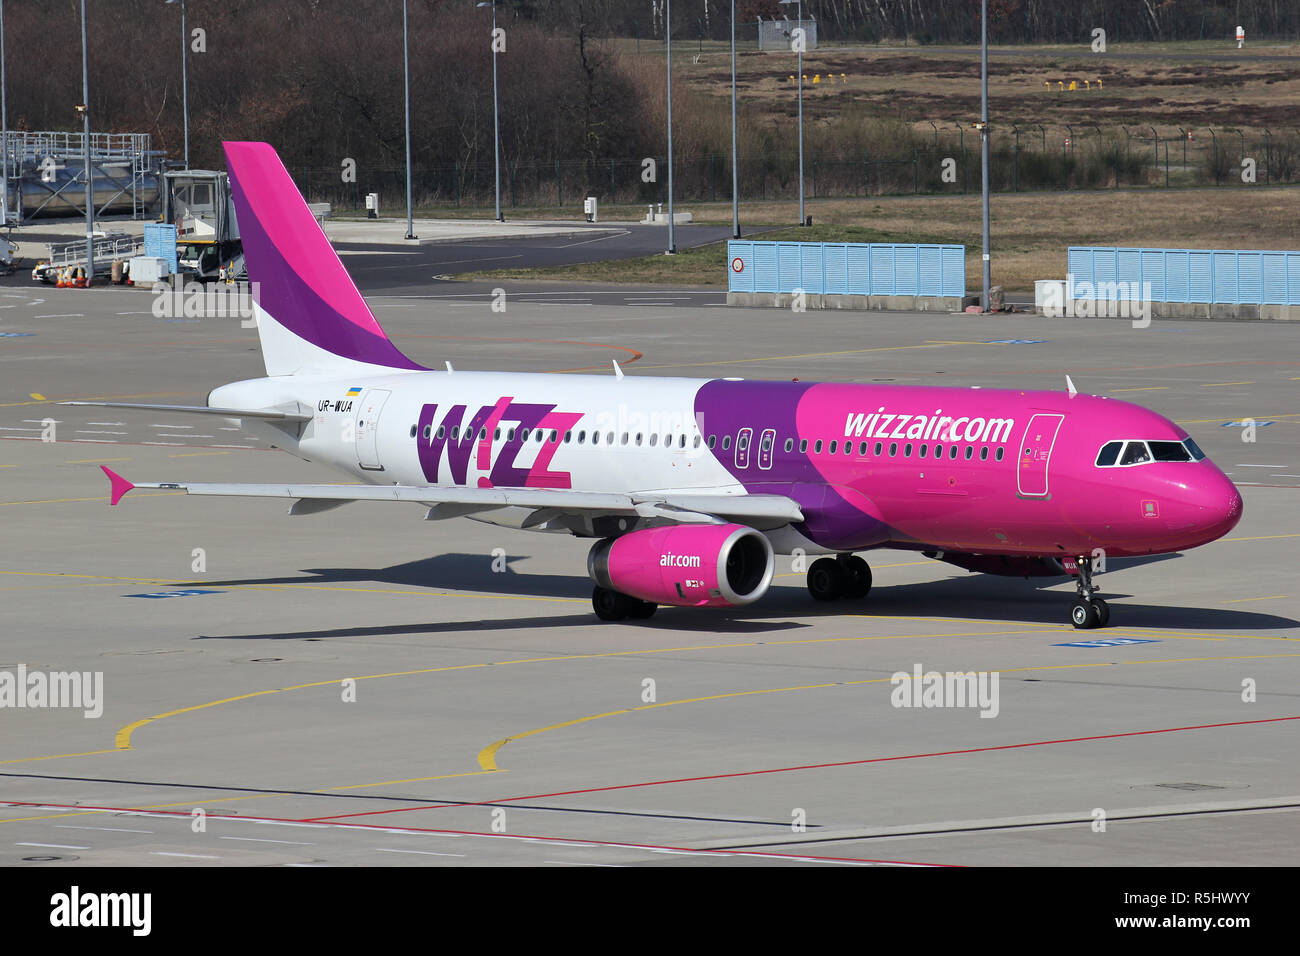 Wizz Air A320 Taxiing Stock Photos & Wizz Air A320 Taxiing